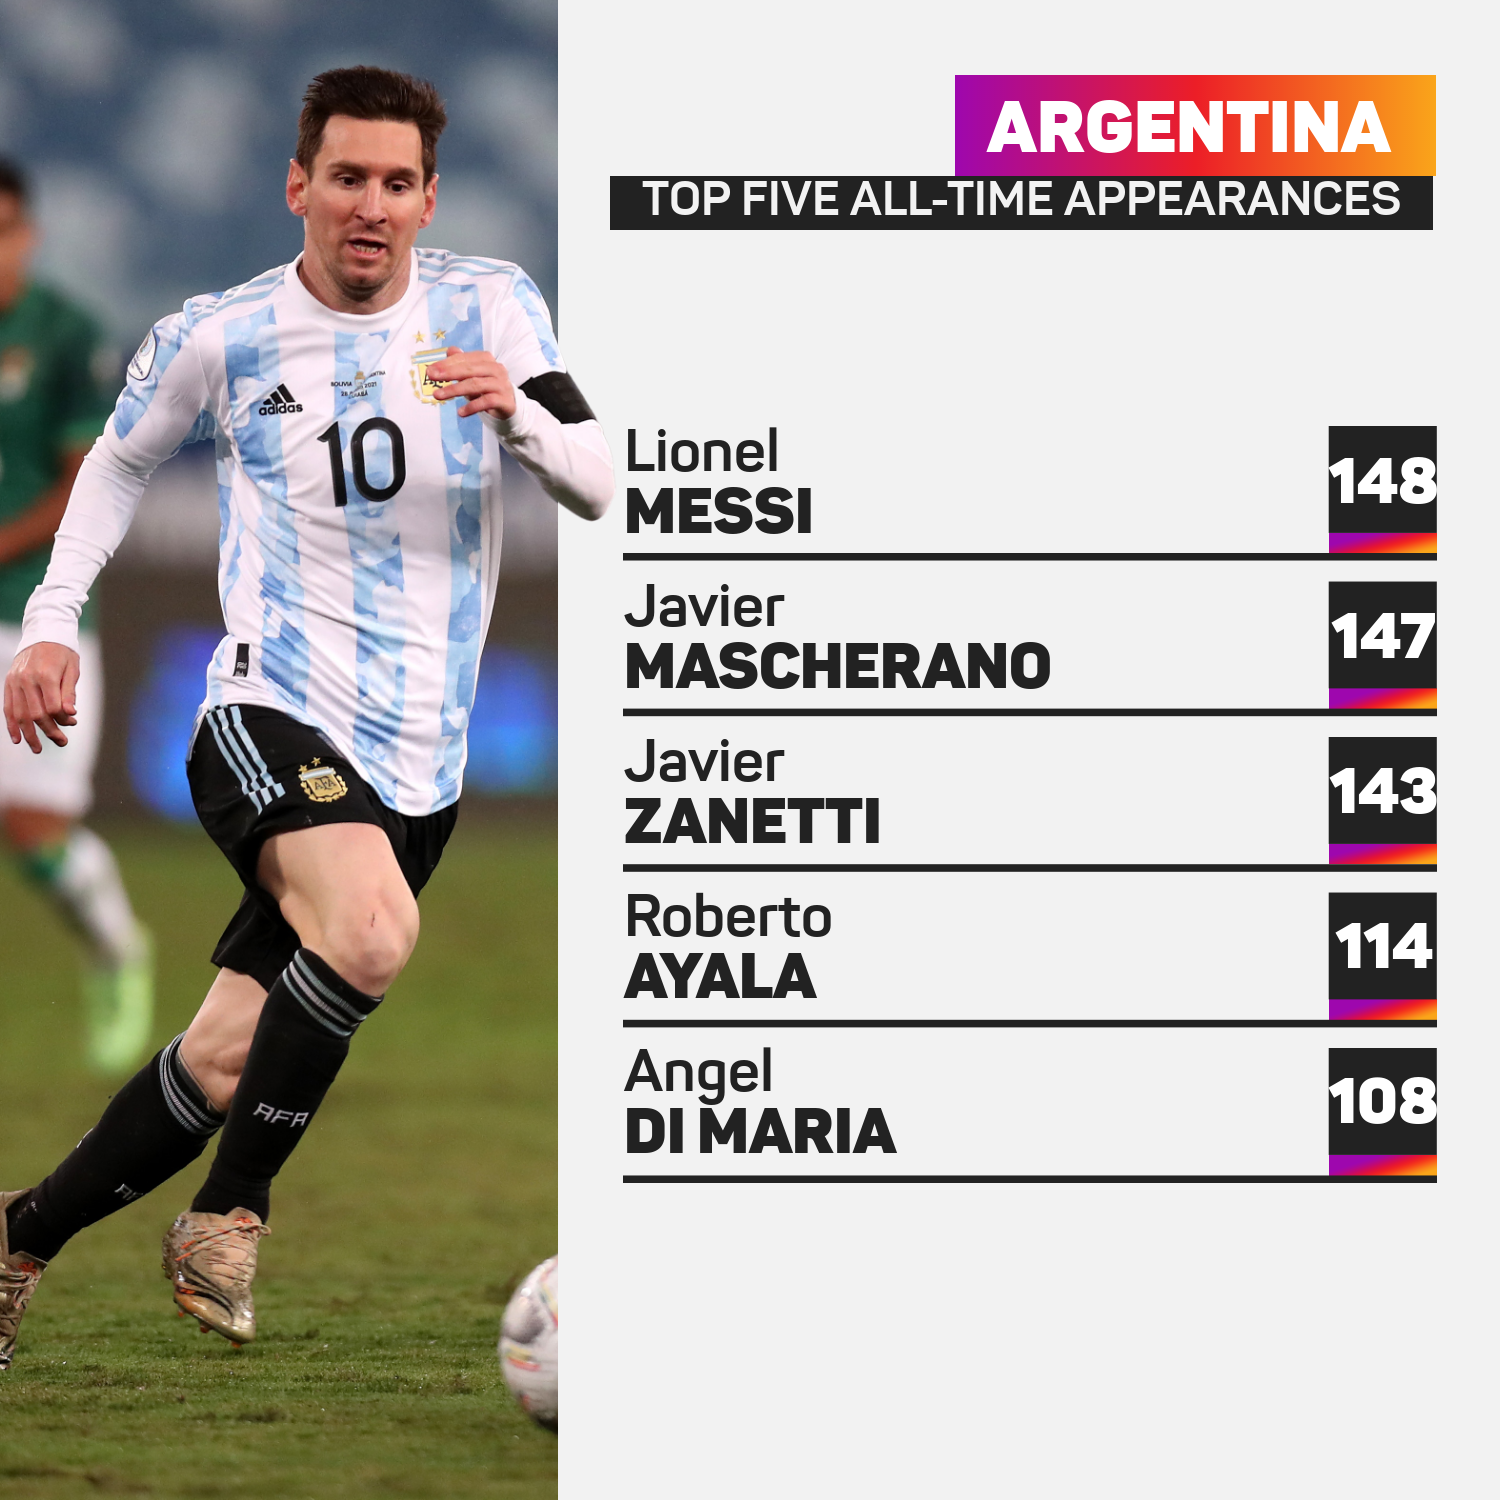 Argentina all-time appearances